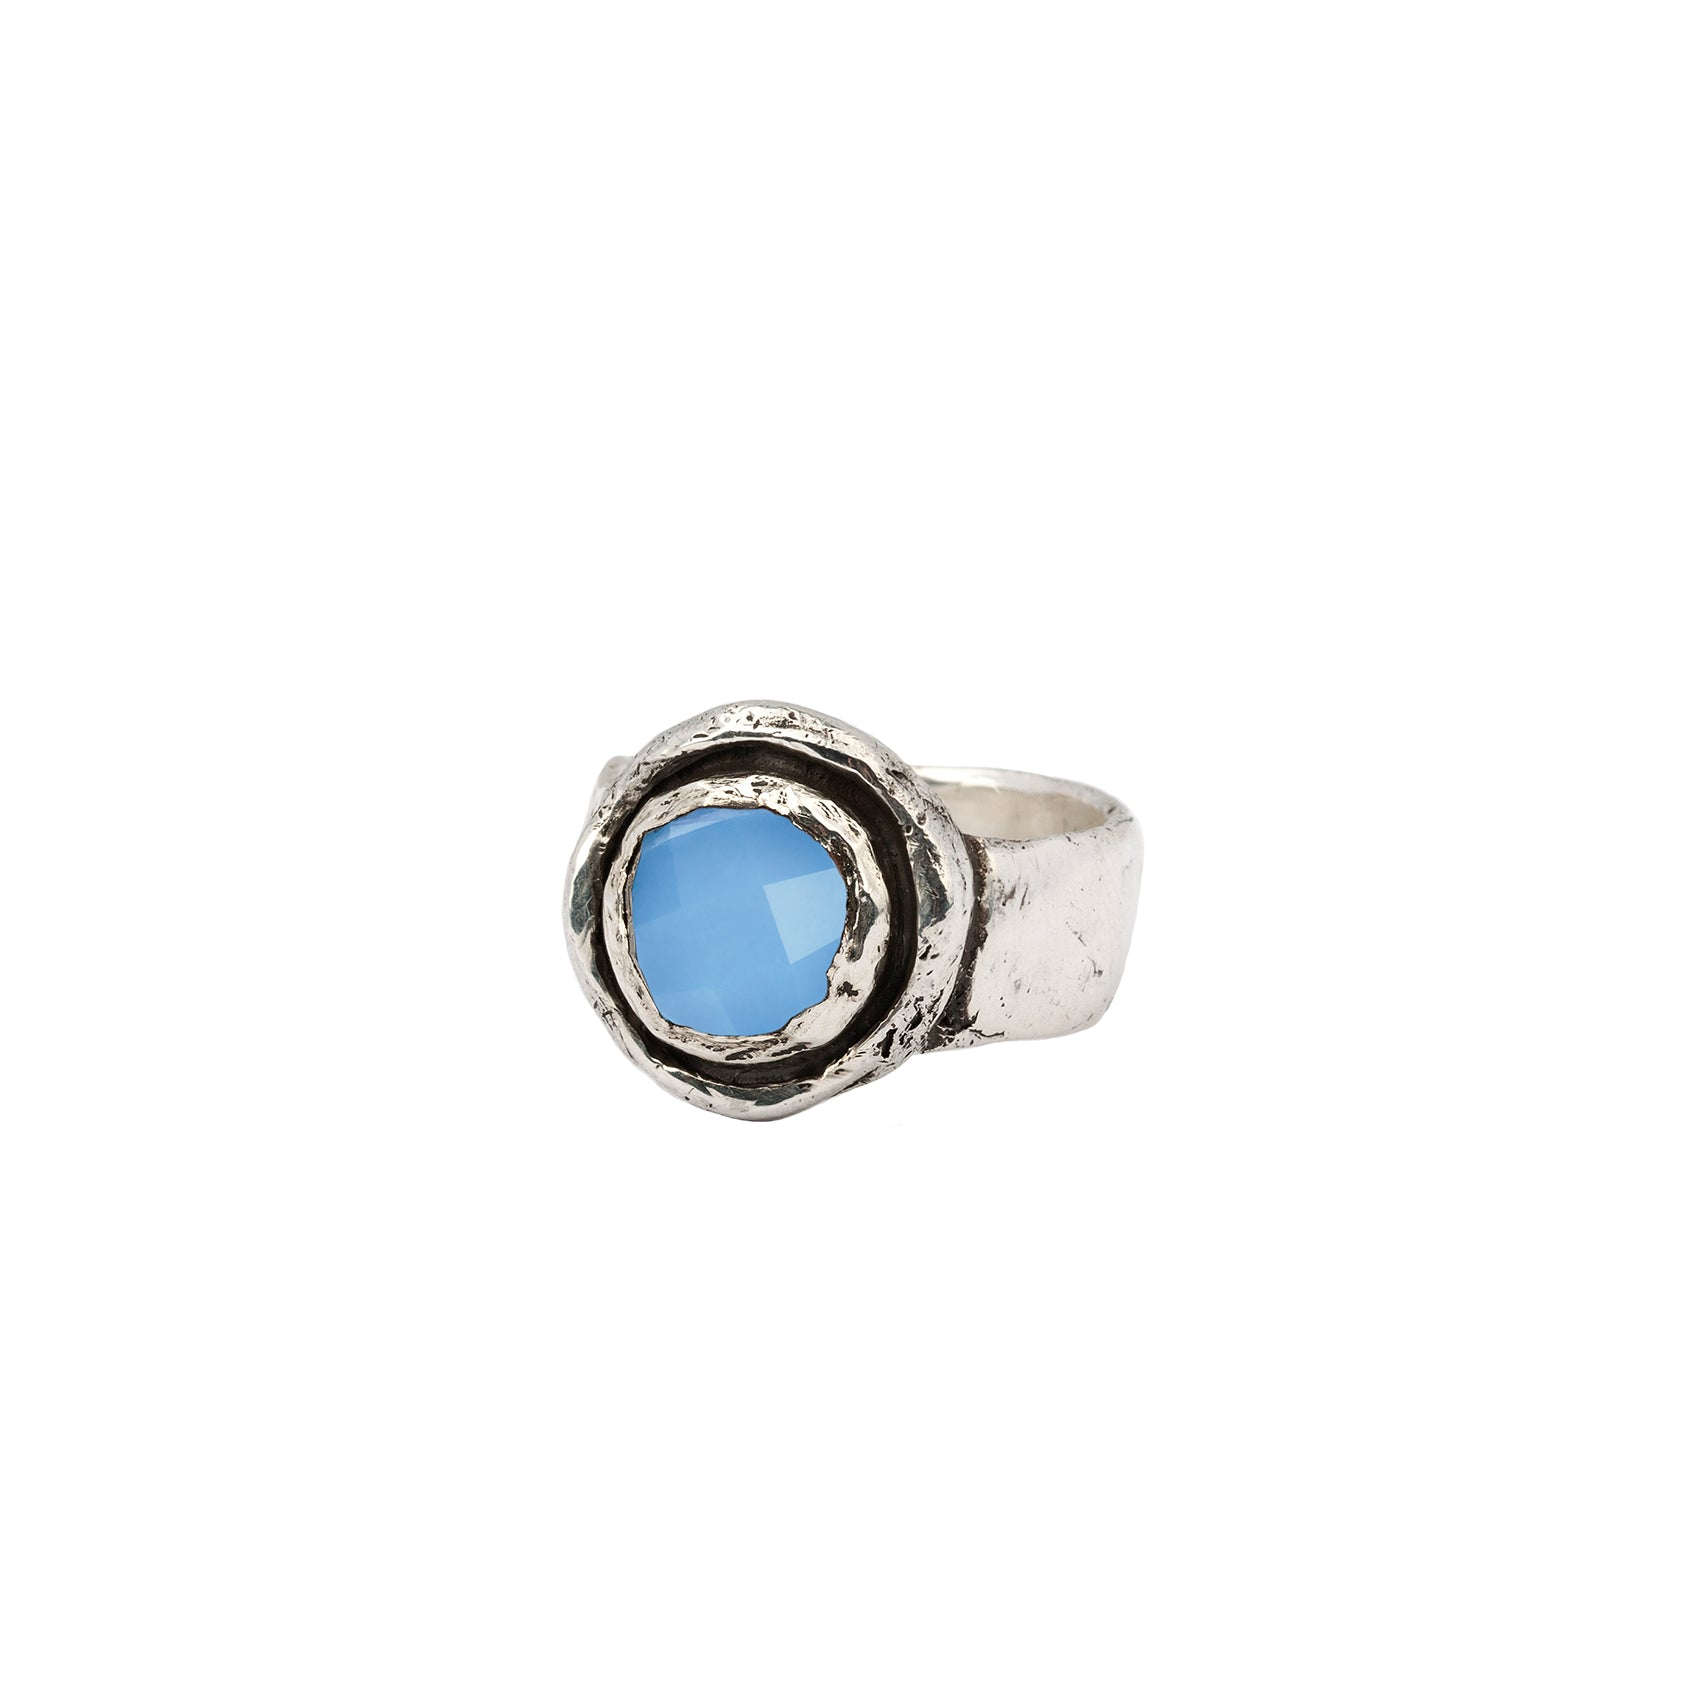 Pyrrha chalcedony faceted stone ring